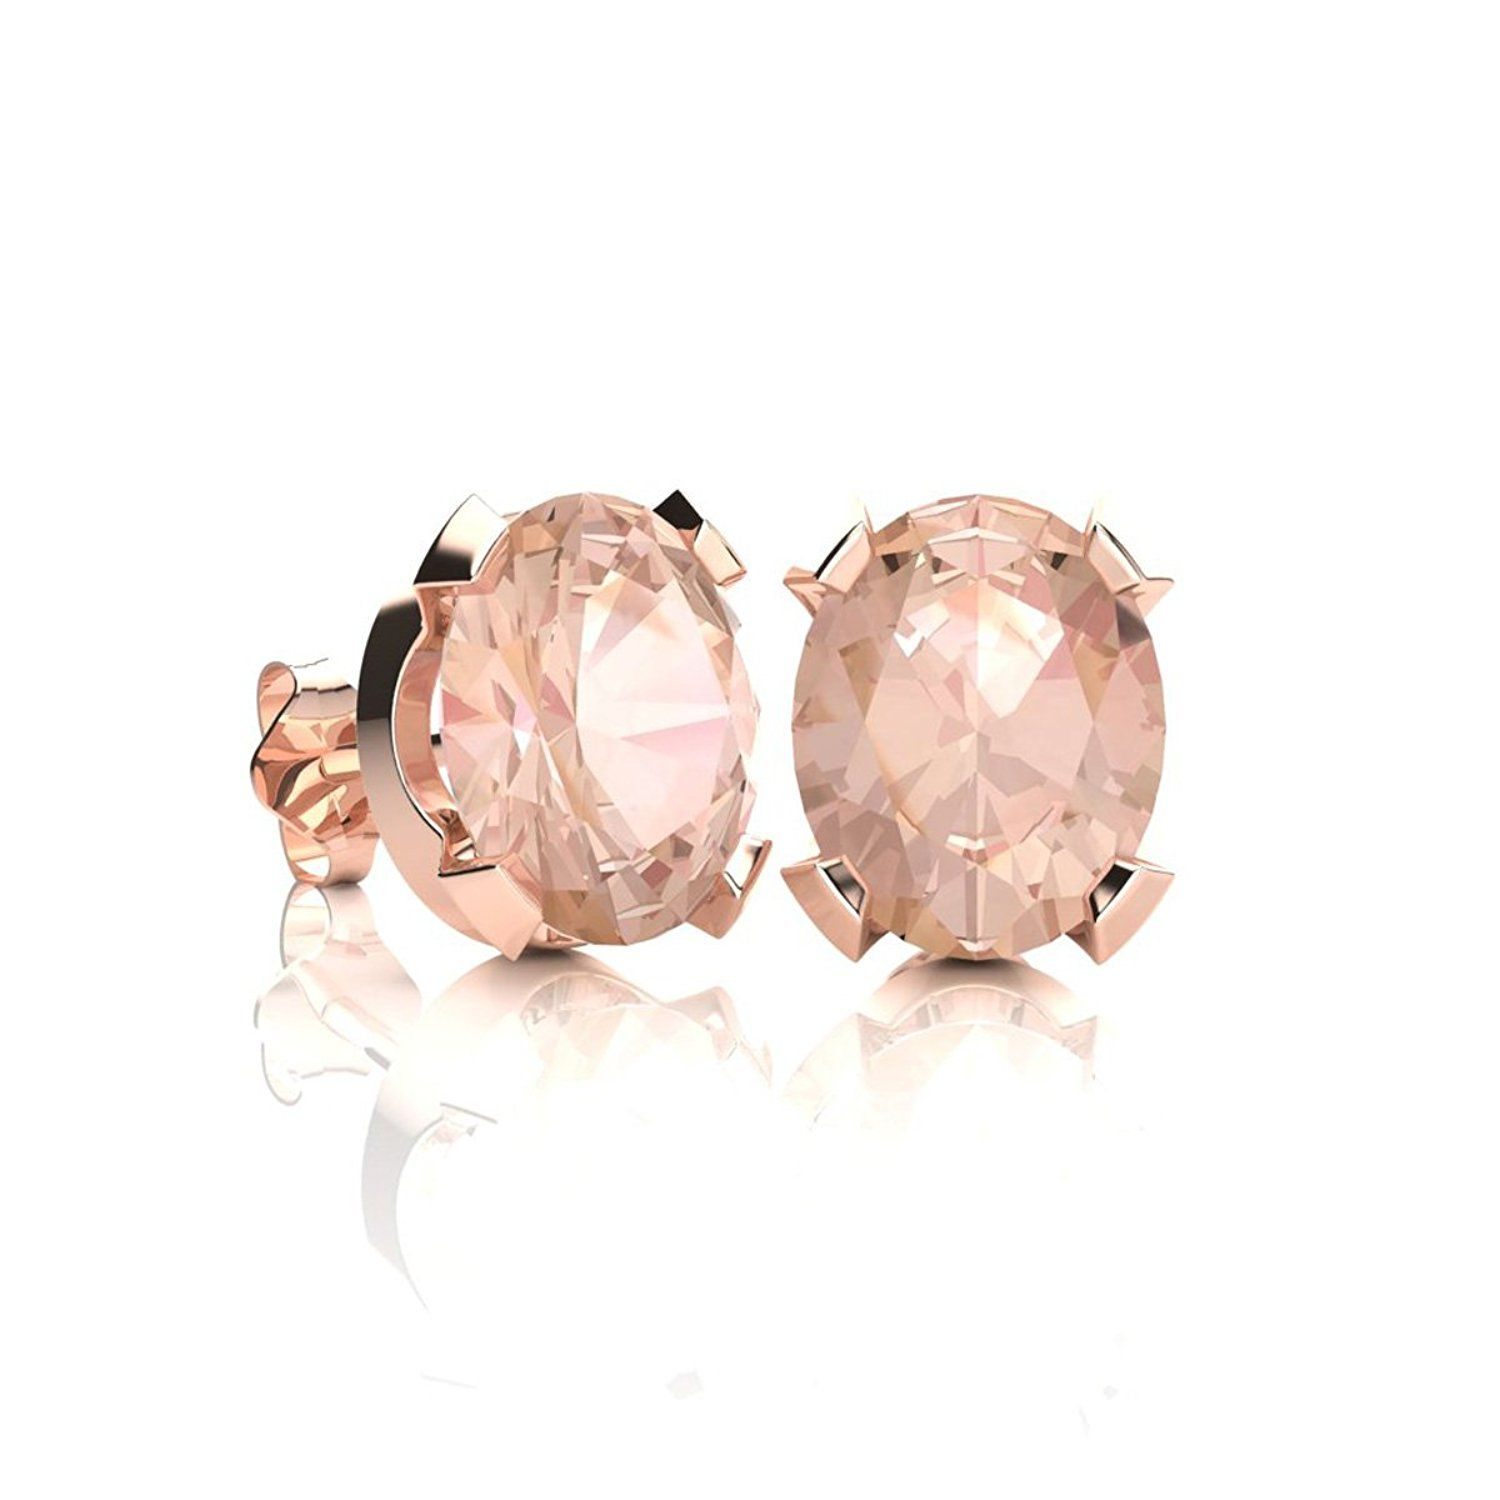 2 Carat Oval Shape Morganite Stud Earrings Available In Yellow Gold